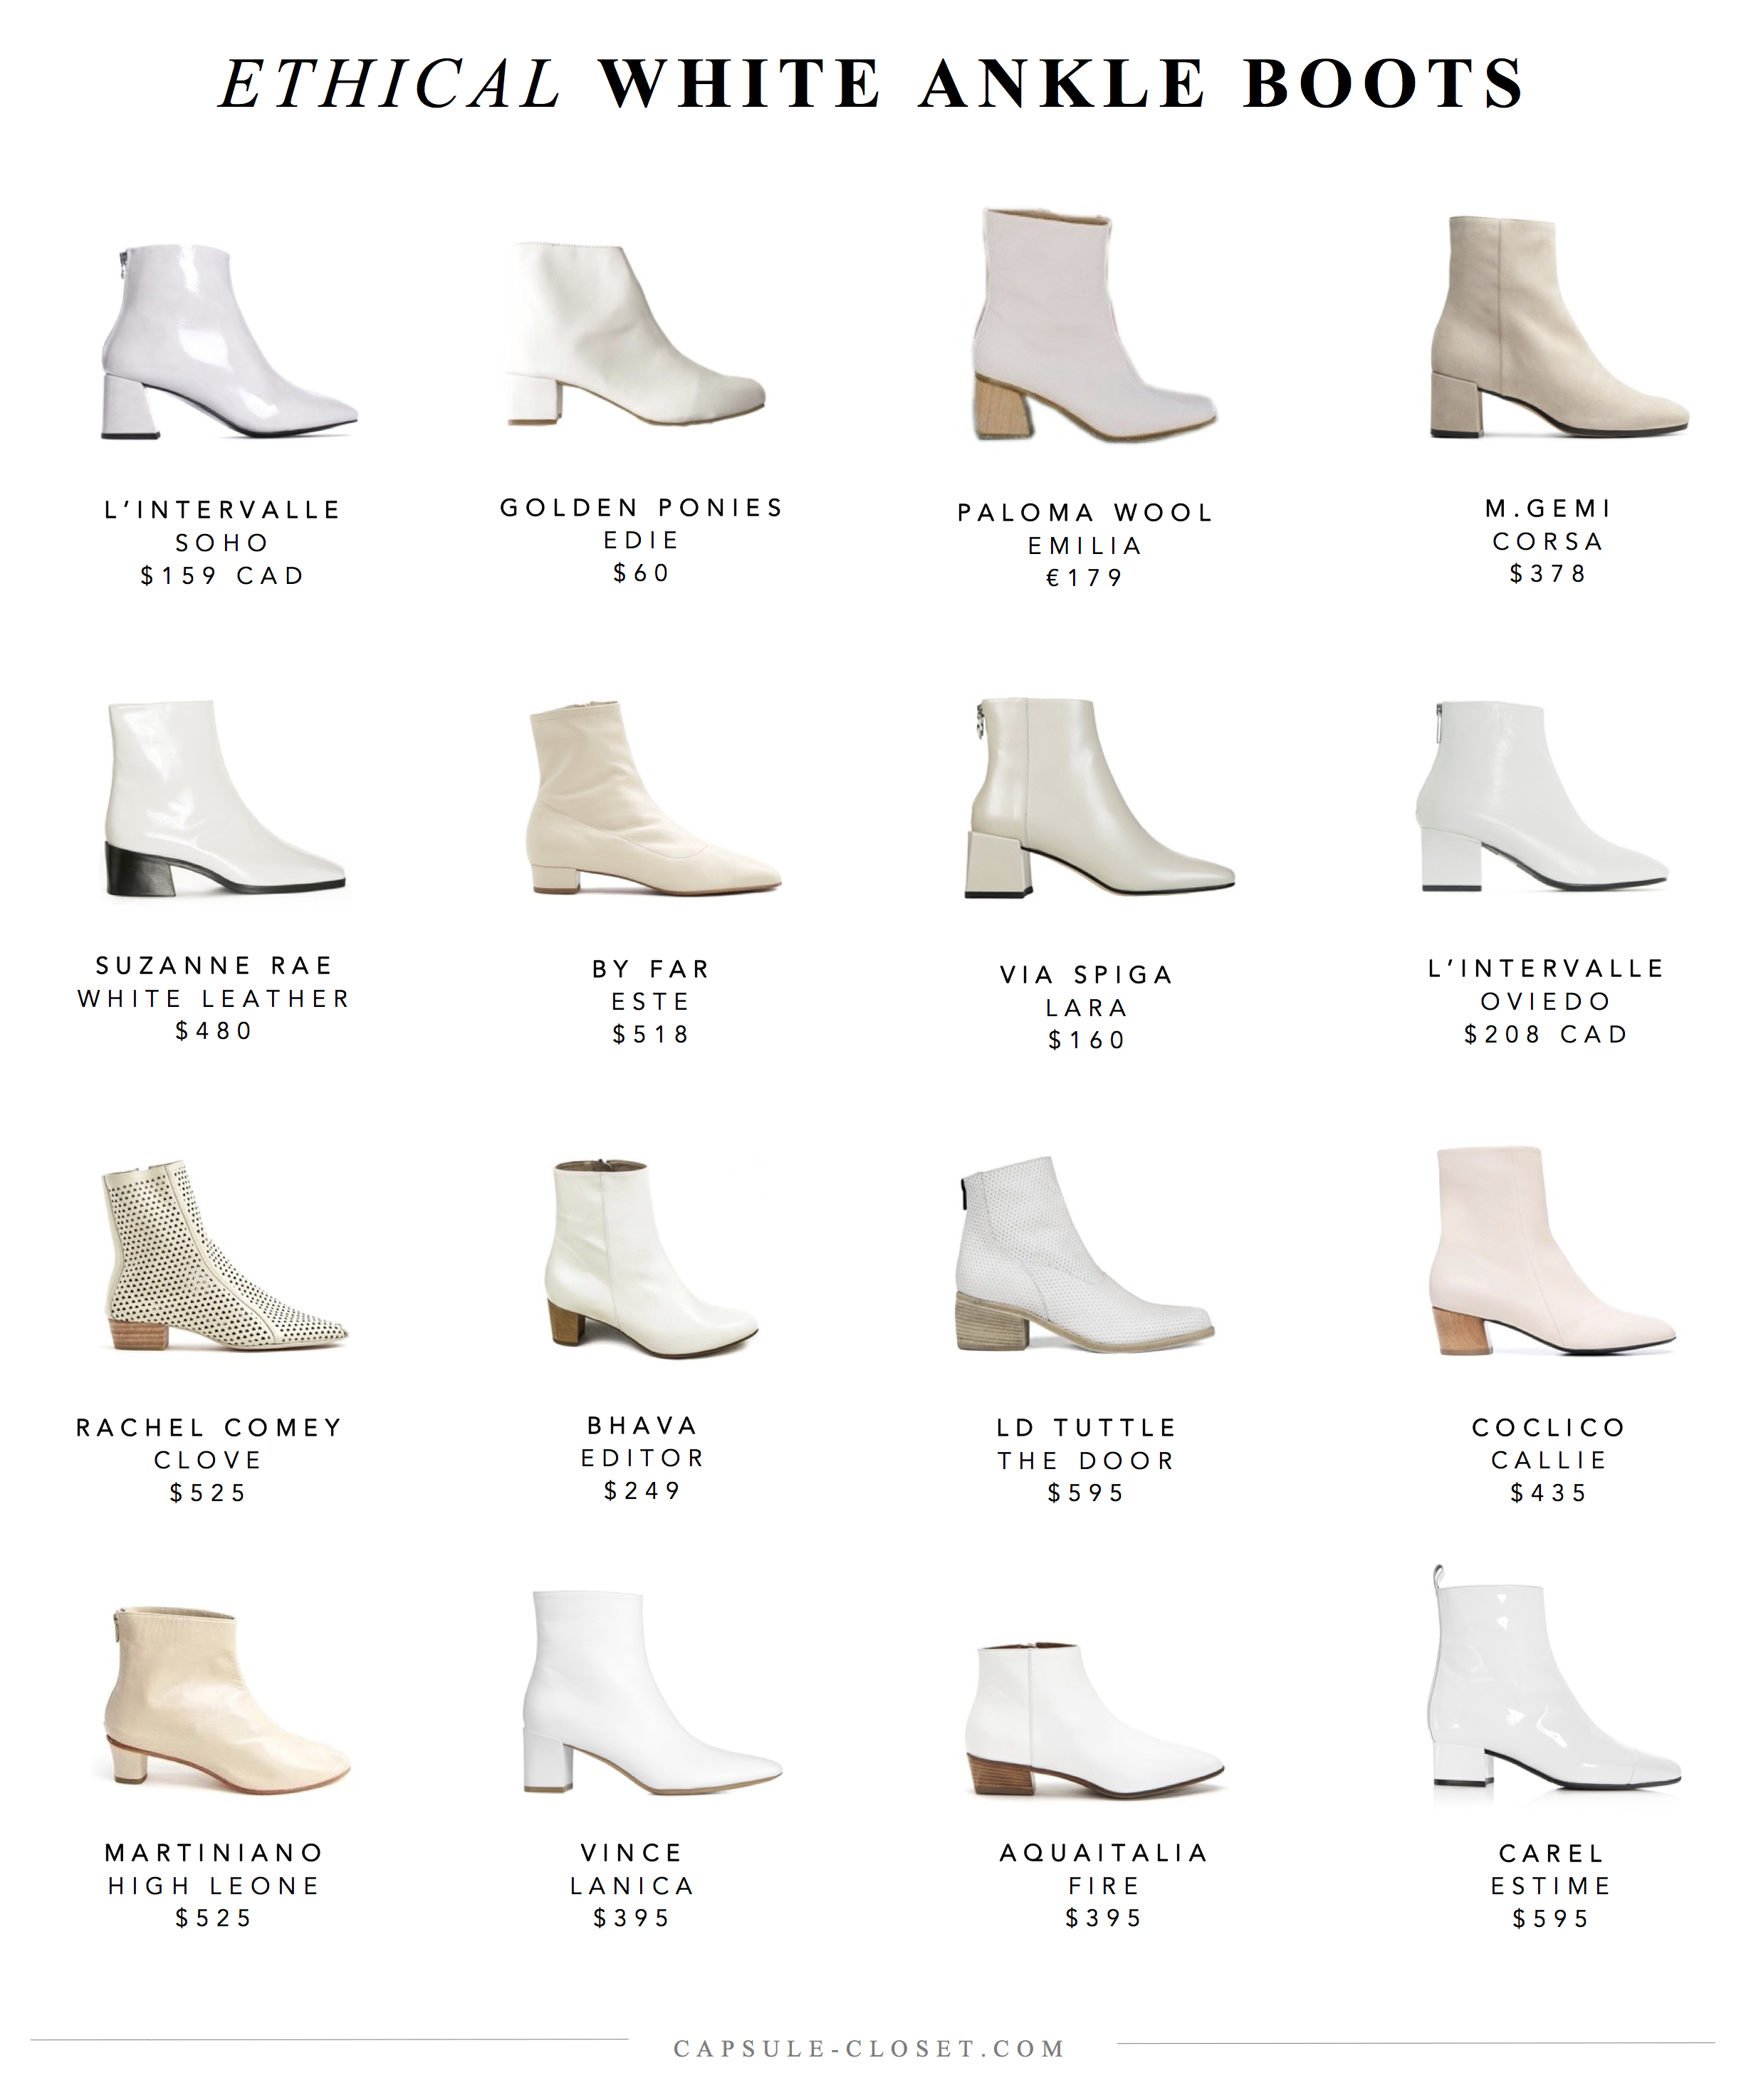 Where to Shop Ethical White Ankle Boots